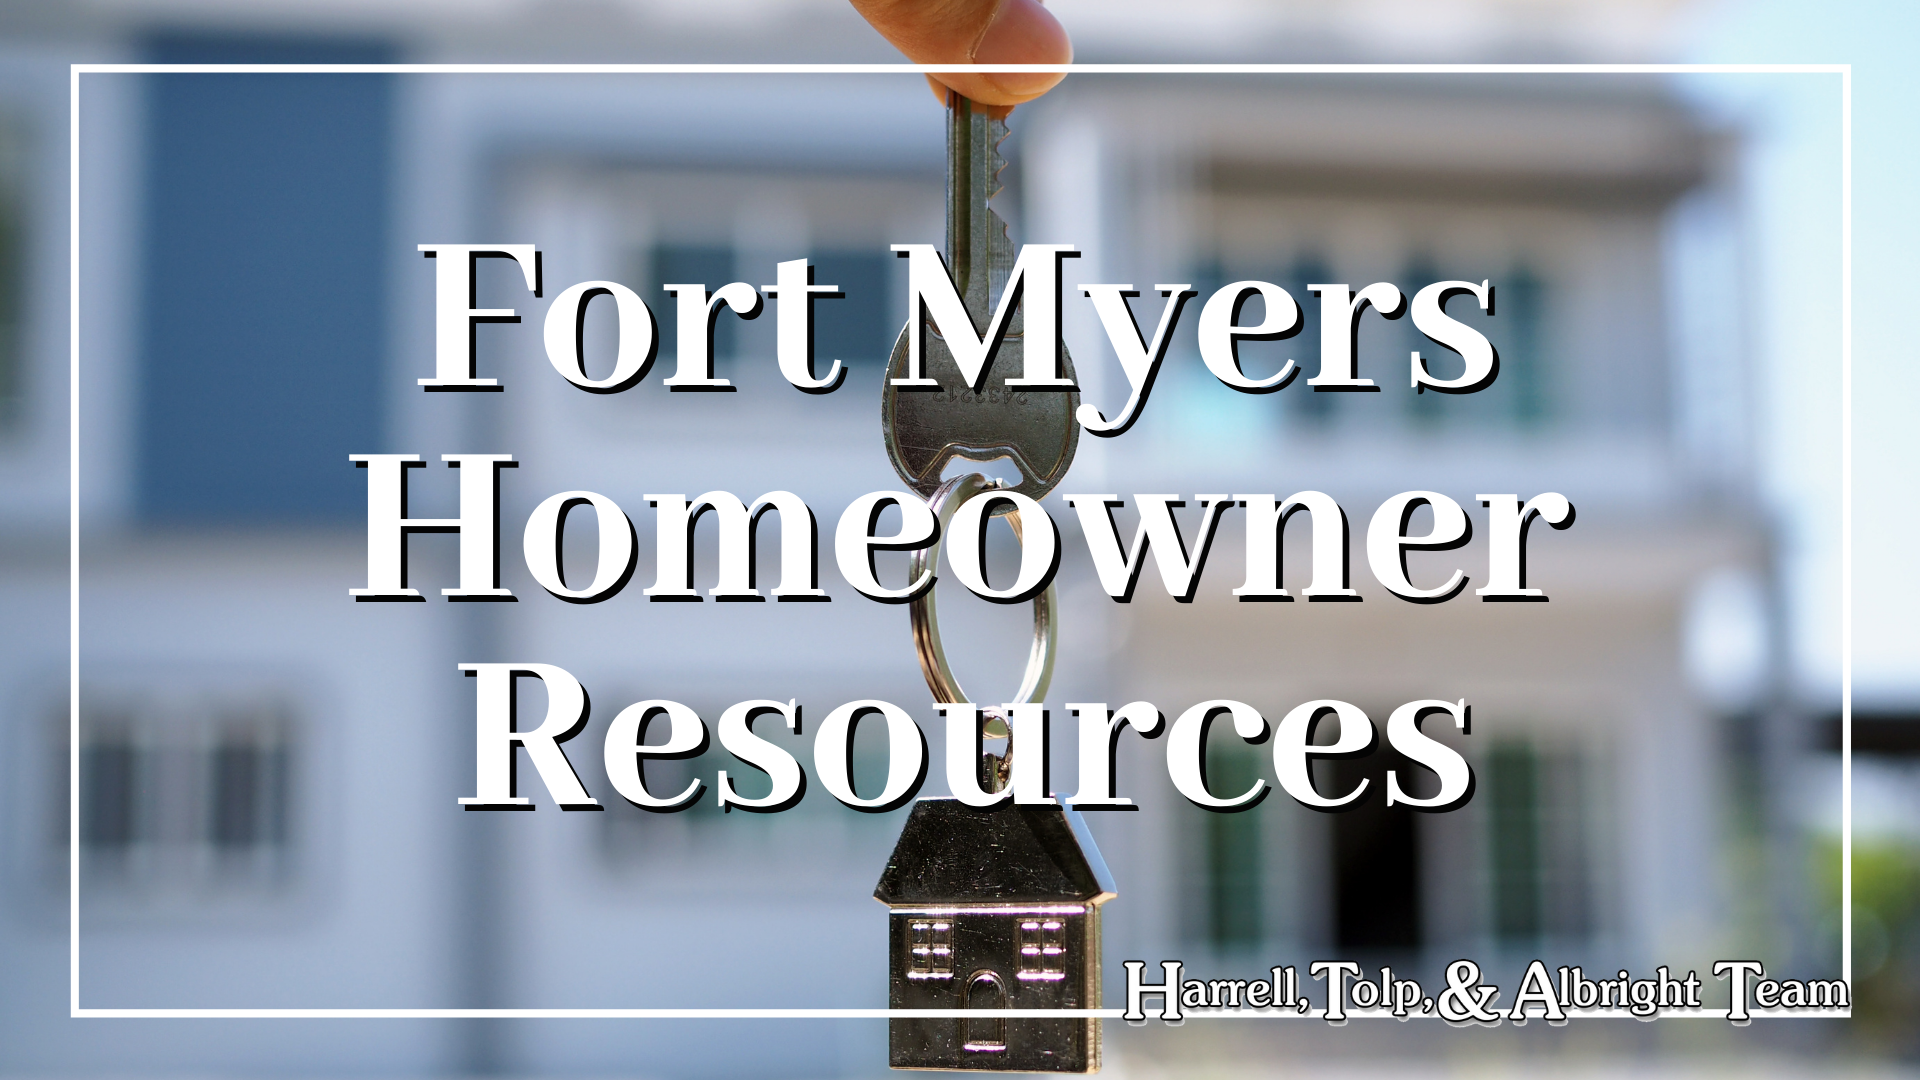 Fort Myers Homeowner Resources